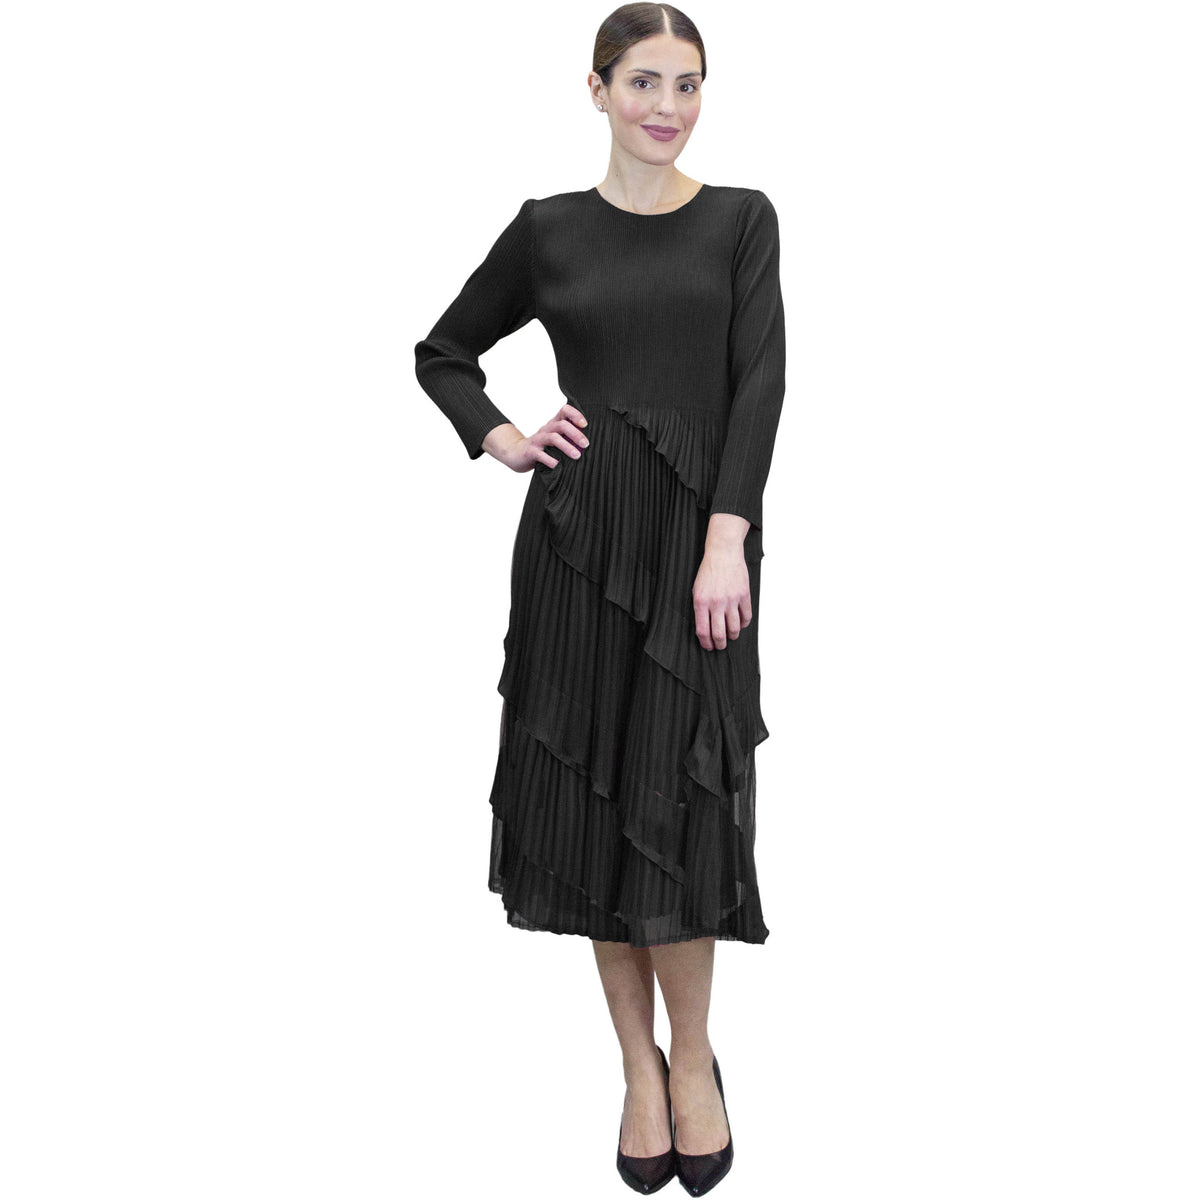 3/4 Sleeve Multi Layer Crinkle Dress - Black